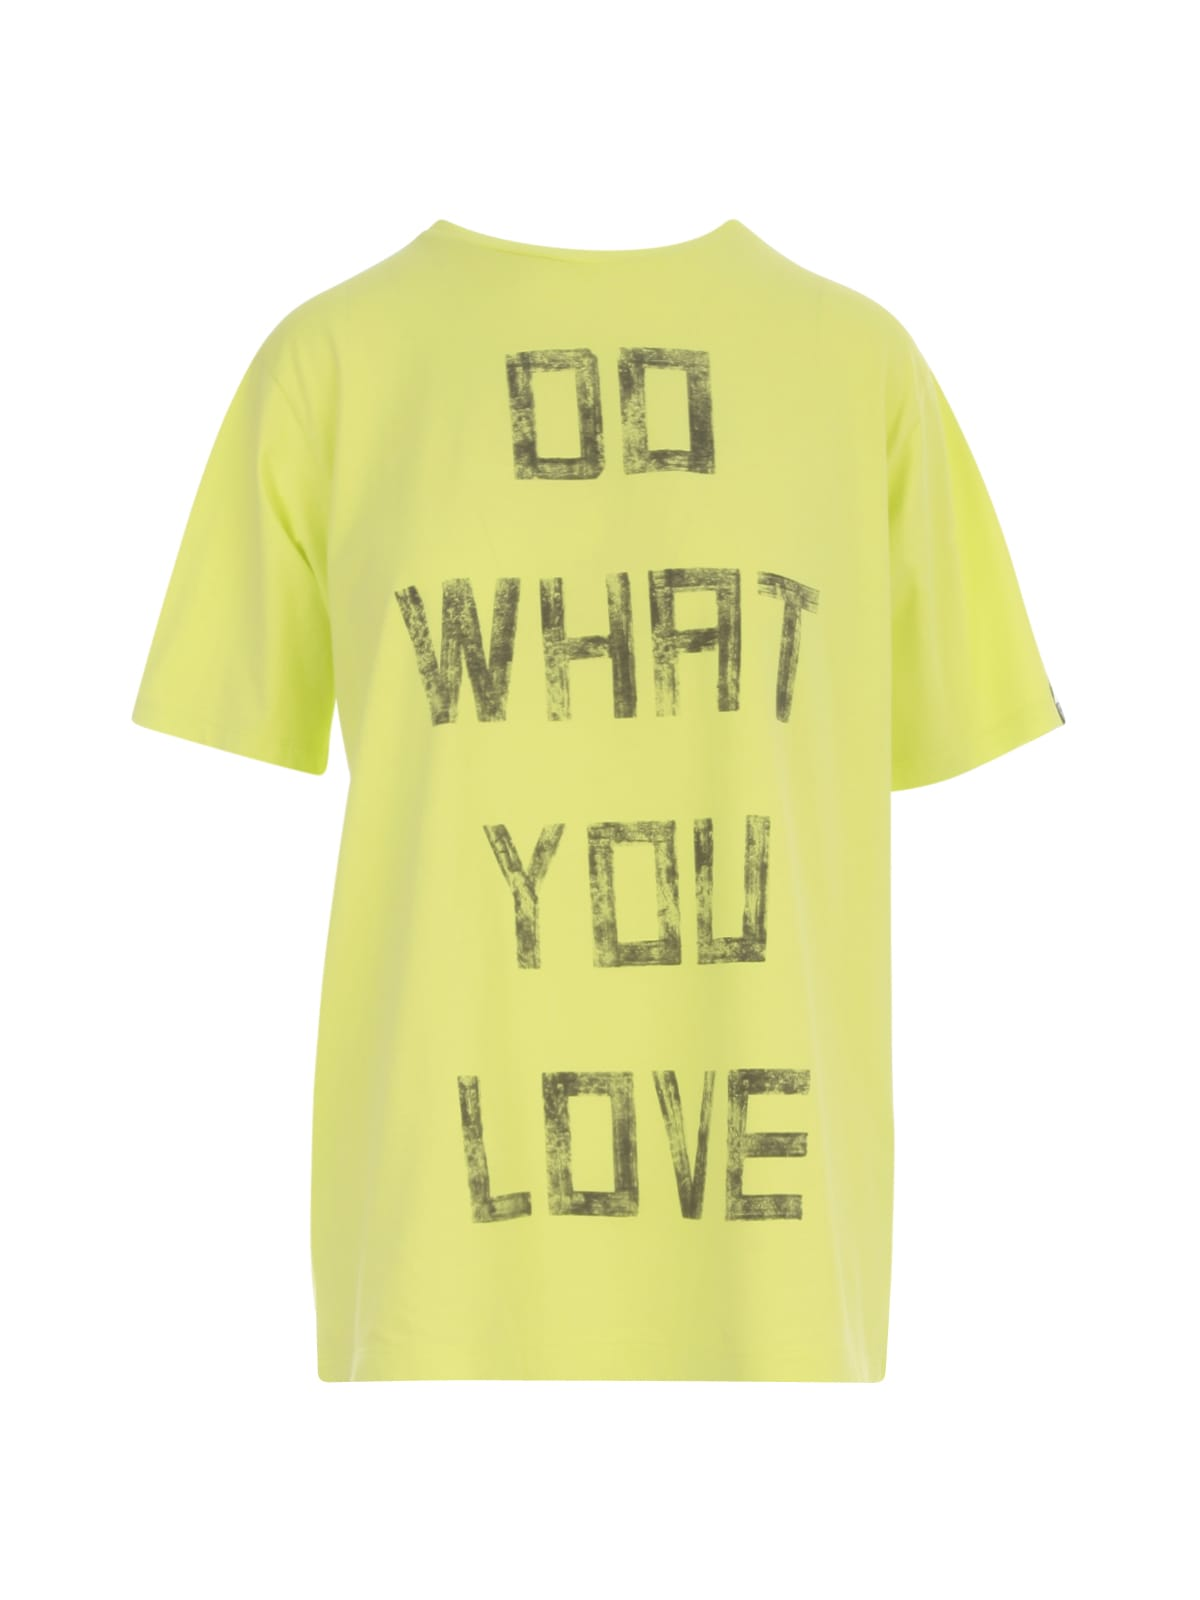 Golden Goose T-SHIRT AIRA BOYFRIEND S/S DO WHAT YOU LOVE BIG ON BACK/DIGITAL/WASHED EFFECT